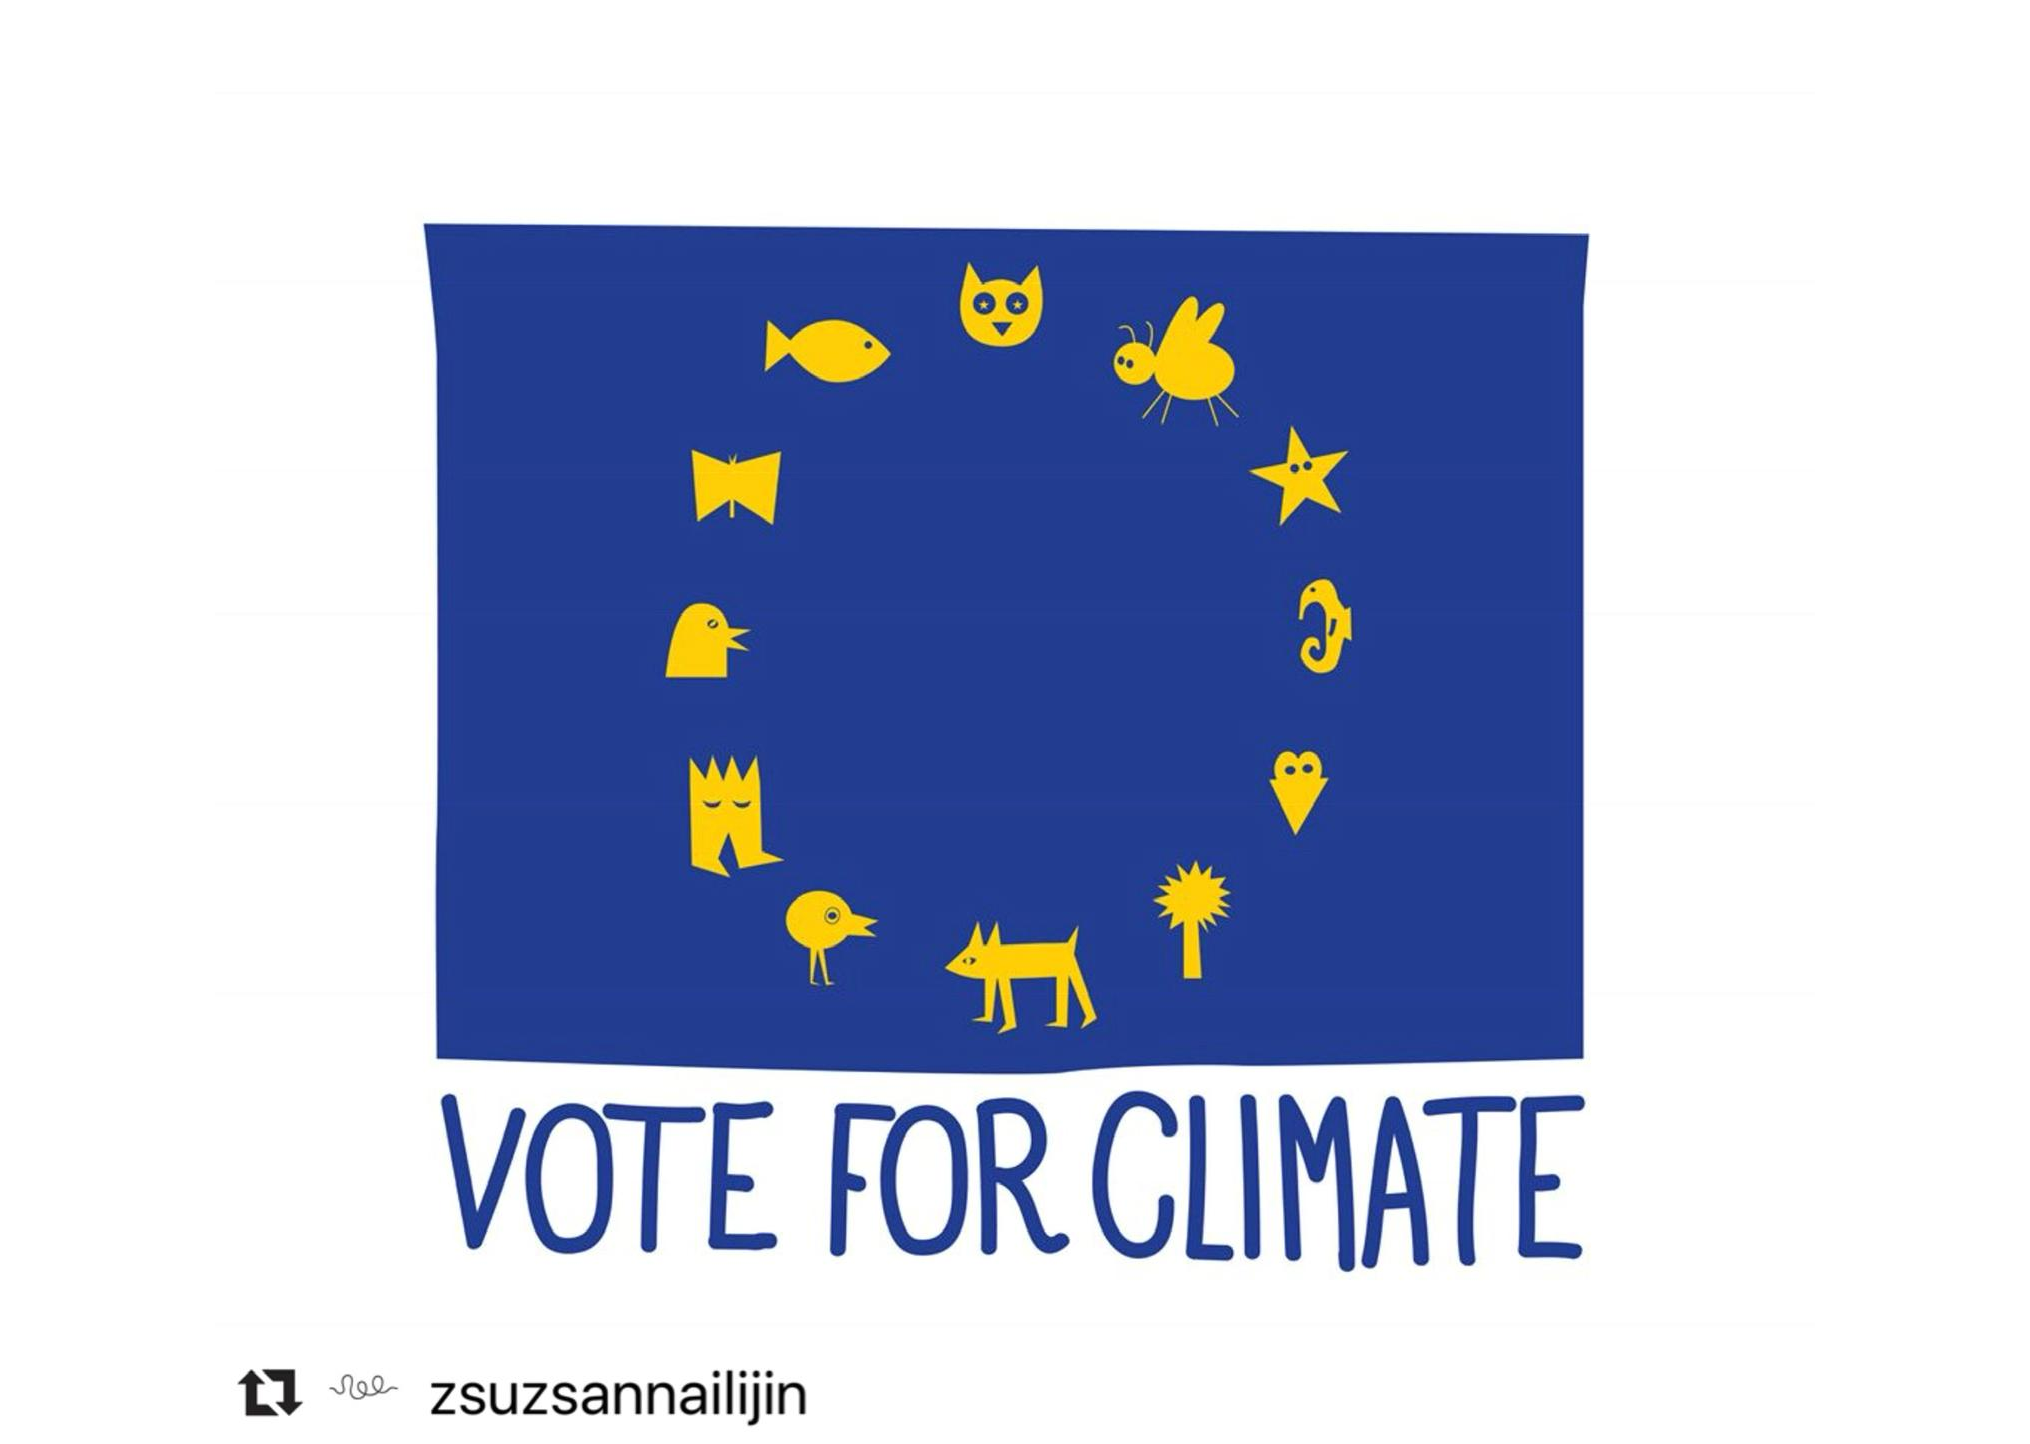 vote for climate